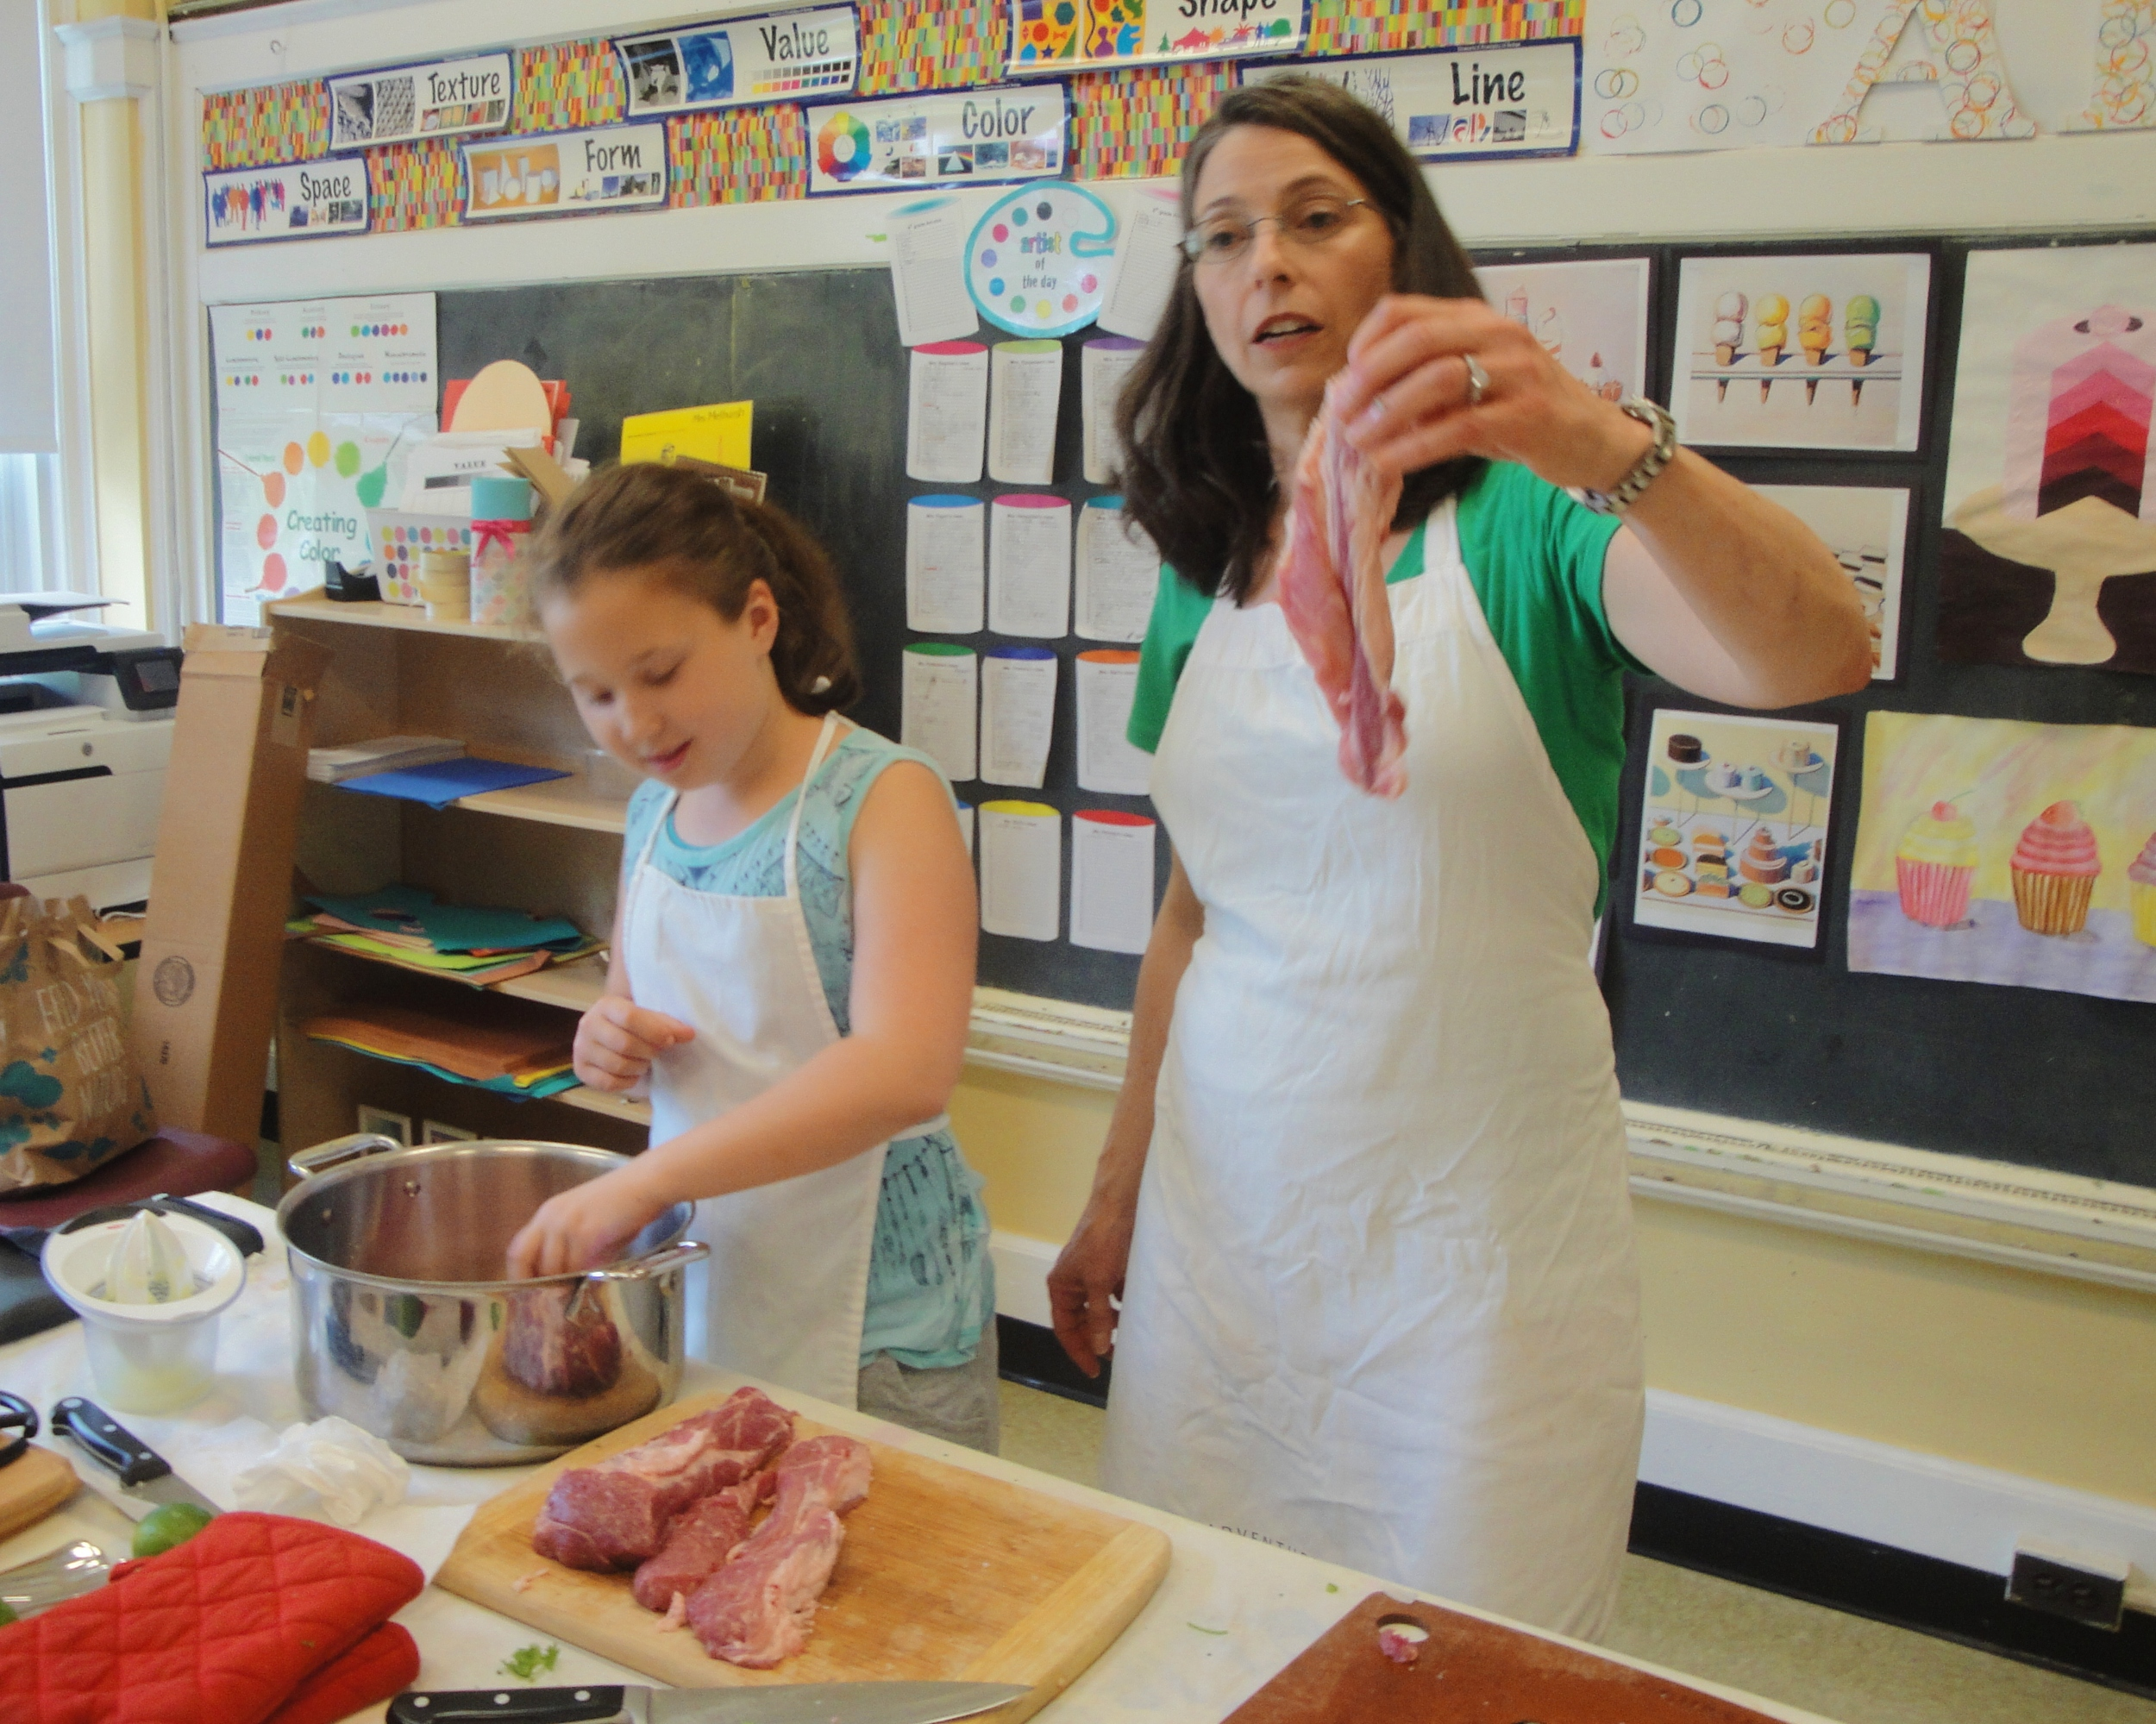 Ms. Lynley points out the fat on pork shoulder - all that fat adds flavor to the finished dish.